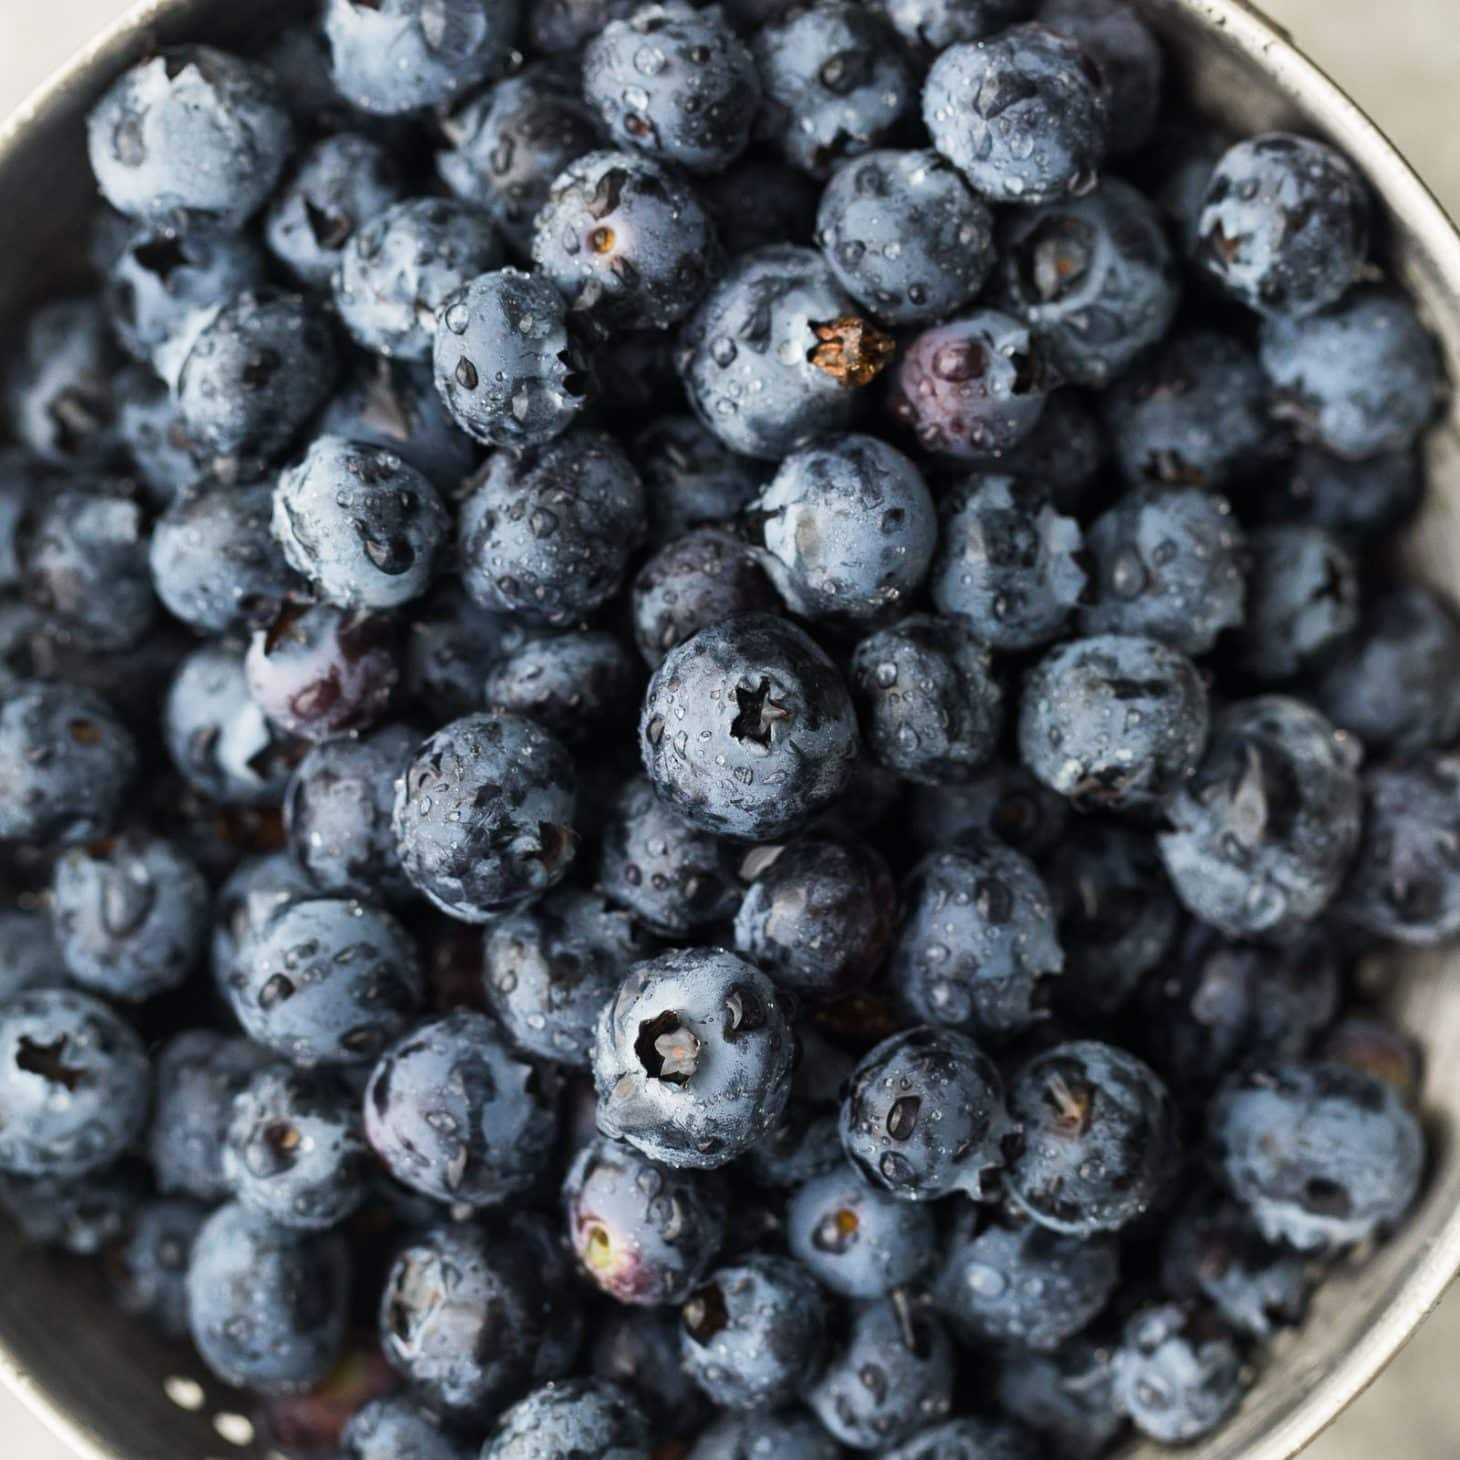 Blueberries | Explore an Ingredient